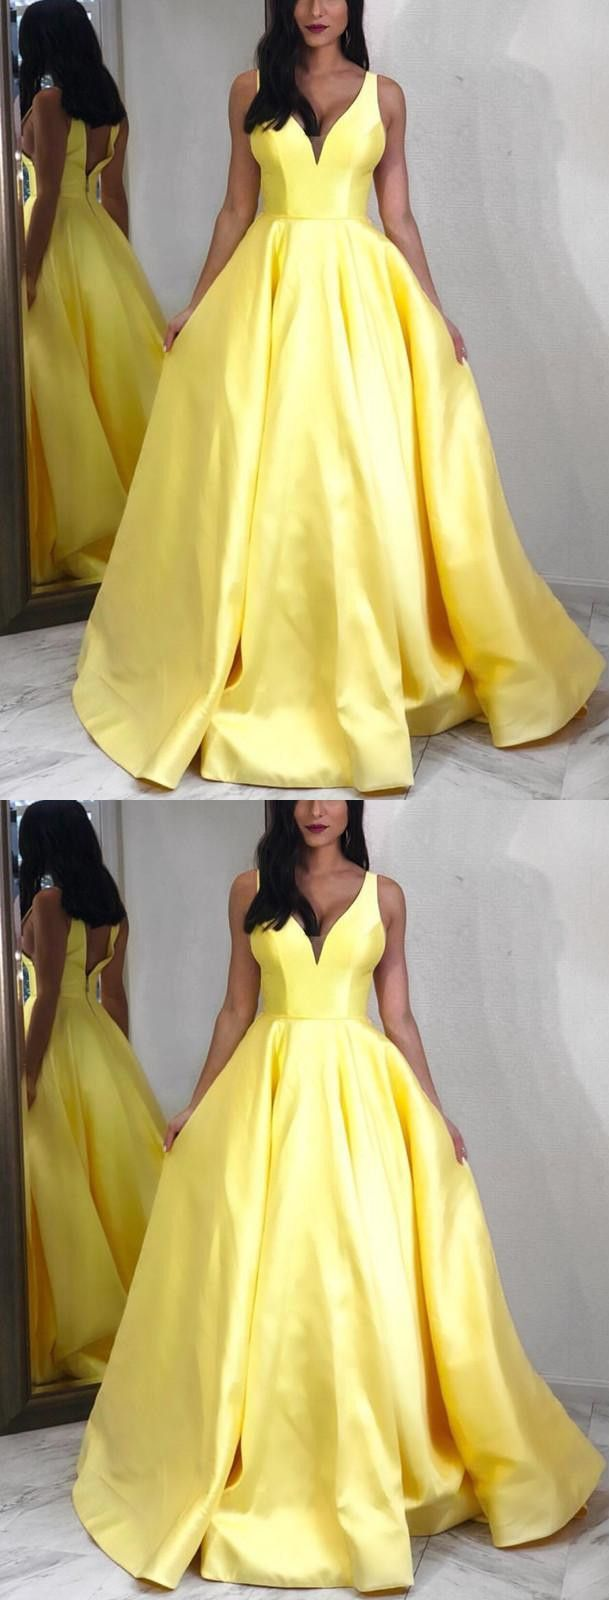 cbd948353ab Yellow Satin V-neck Floor Length Prom Dresses 2019 Long in 2019 ...